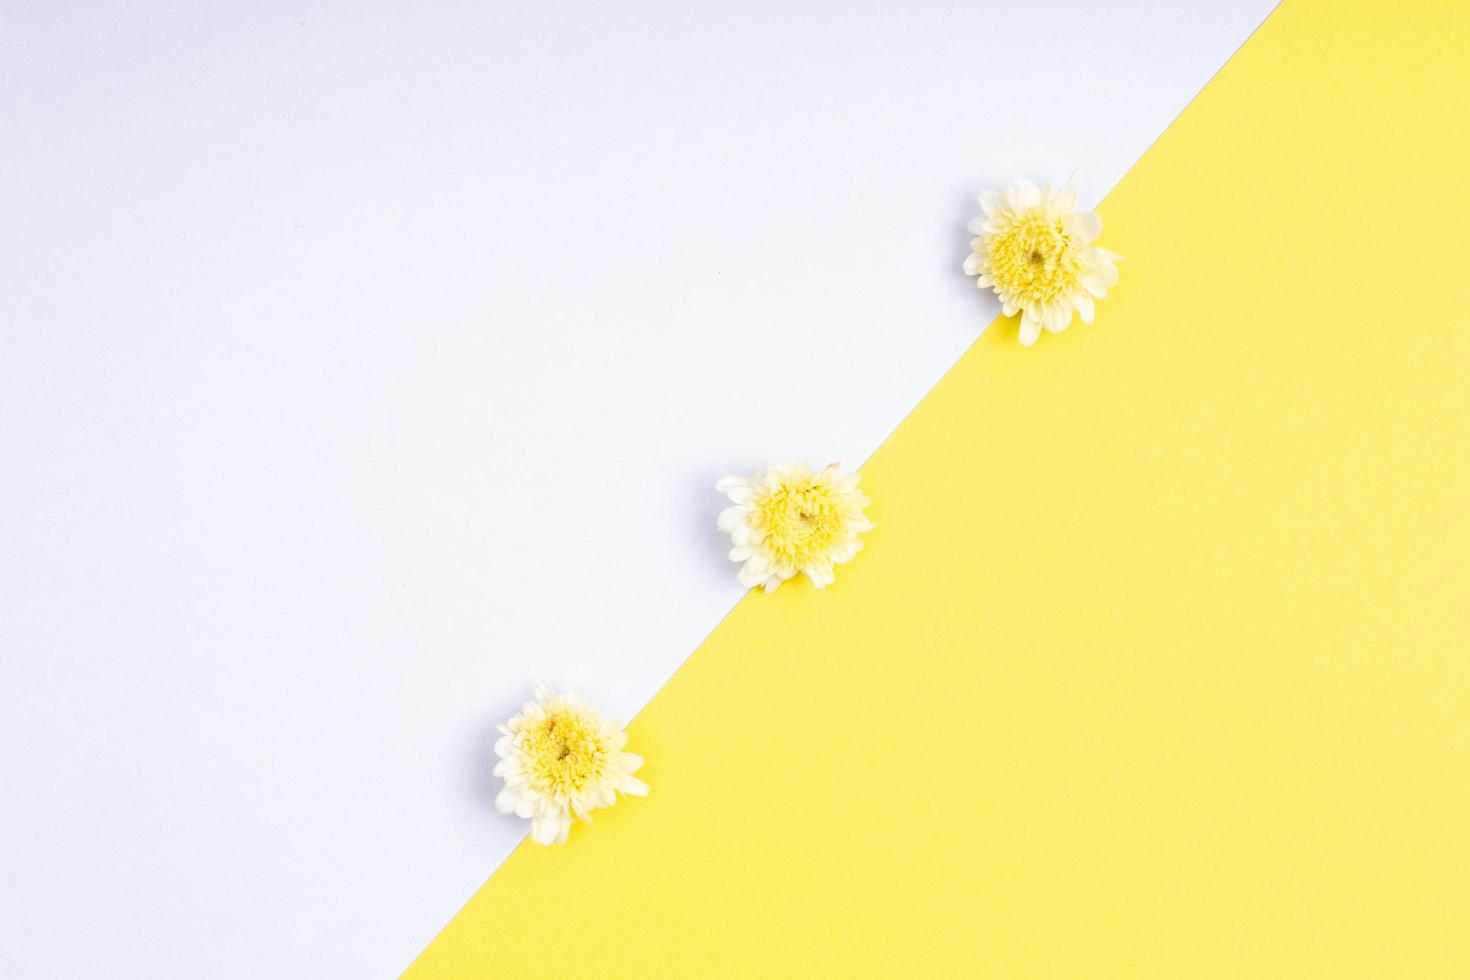 Beautiful blooming fresh flower isolated on paper background photo